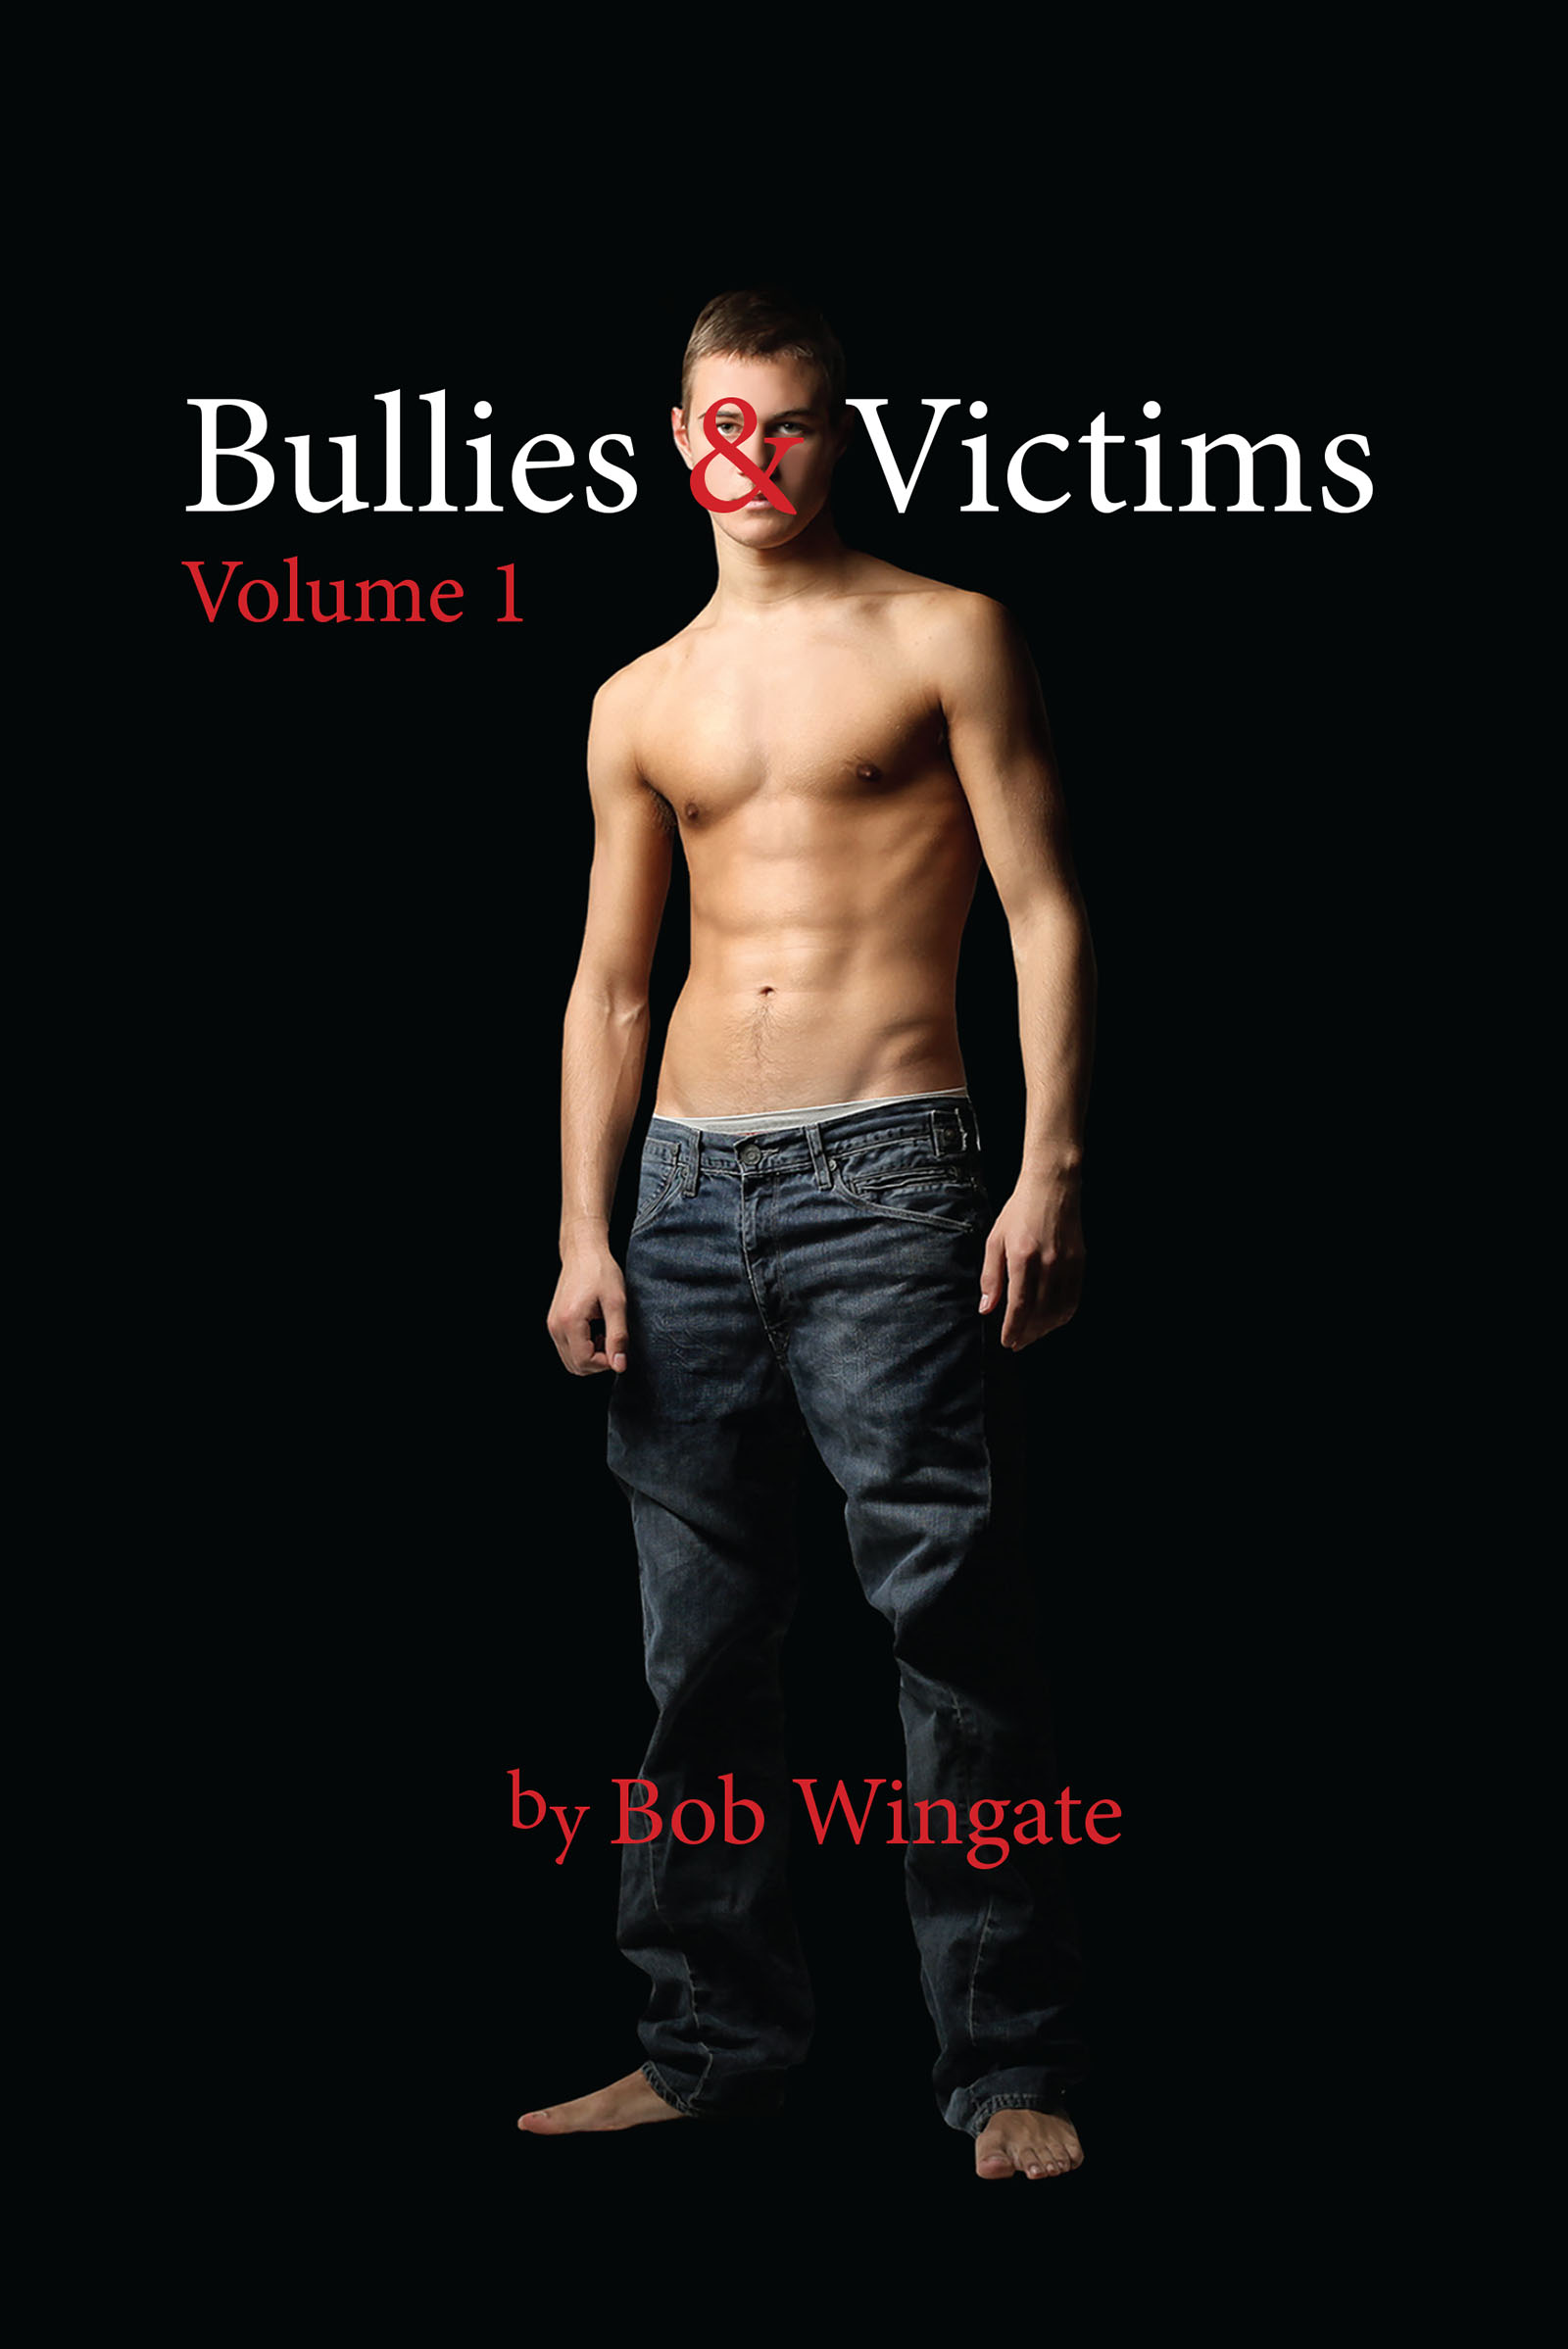 Bullies & Victims, Volume 1 (eBook)